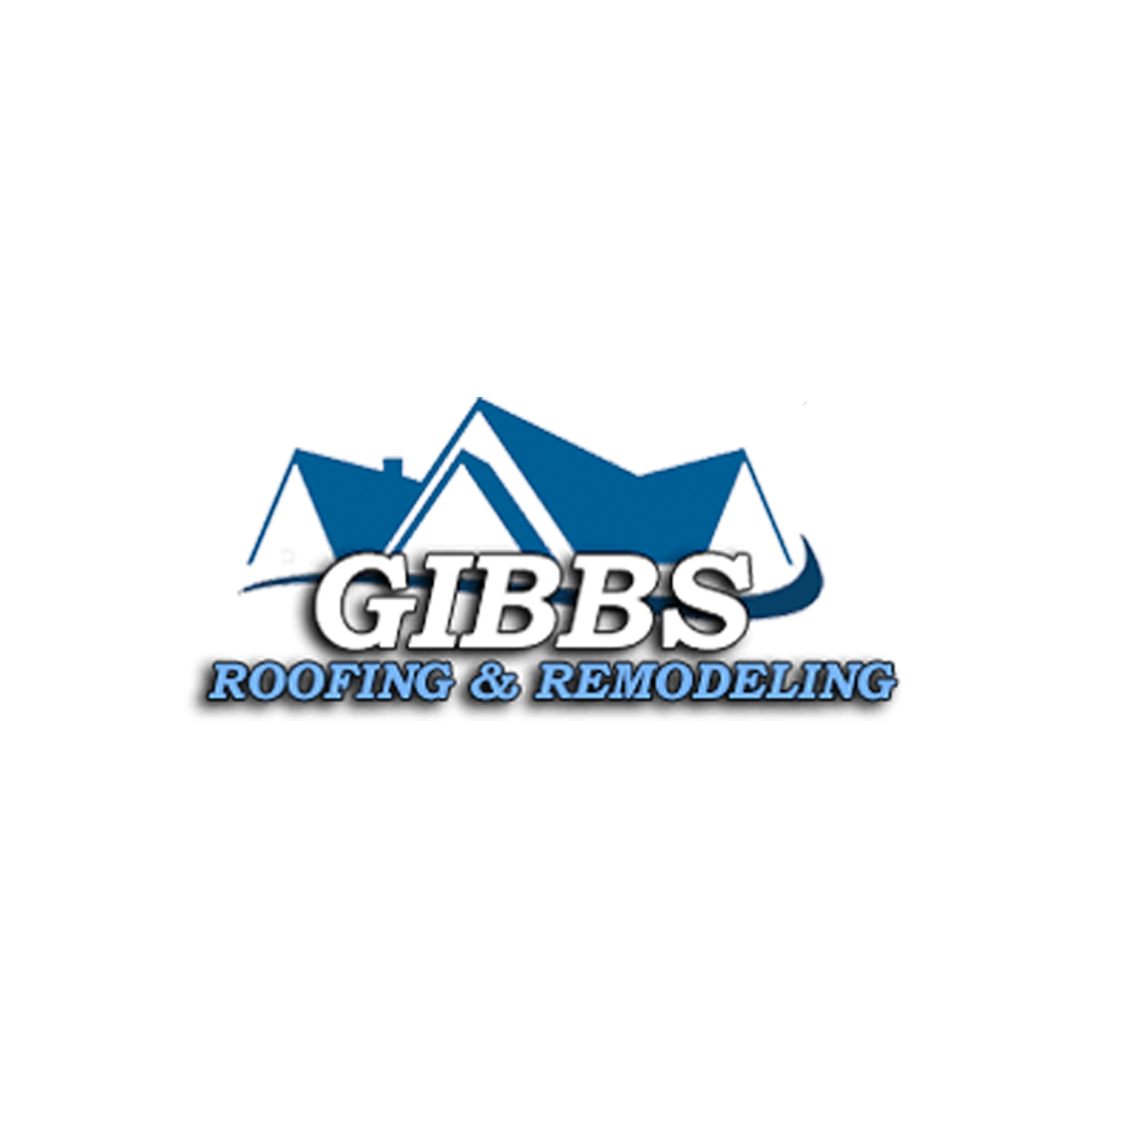 Gibbs Roofing & Remodeling